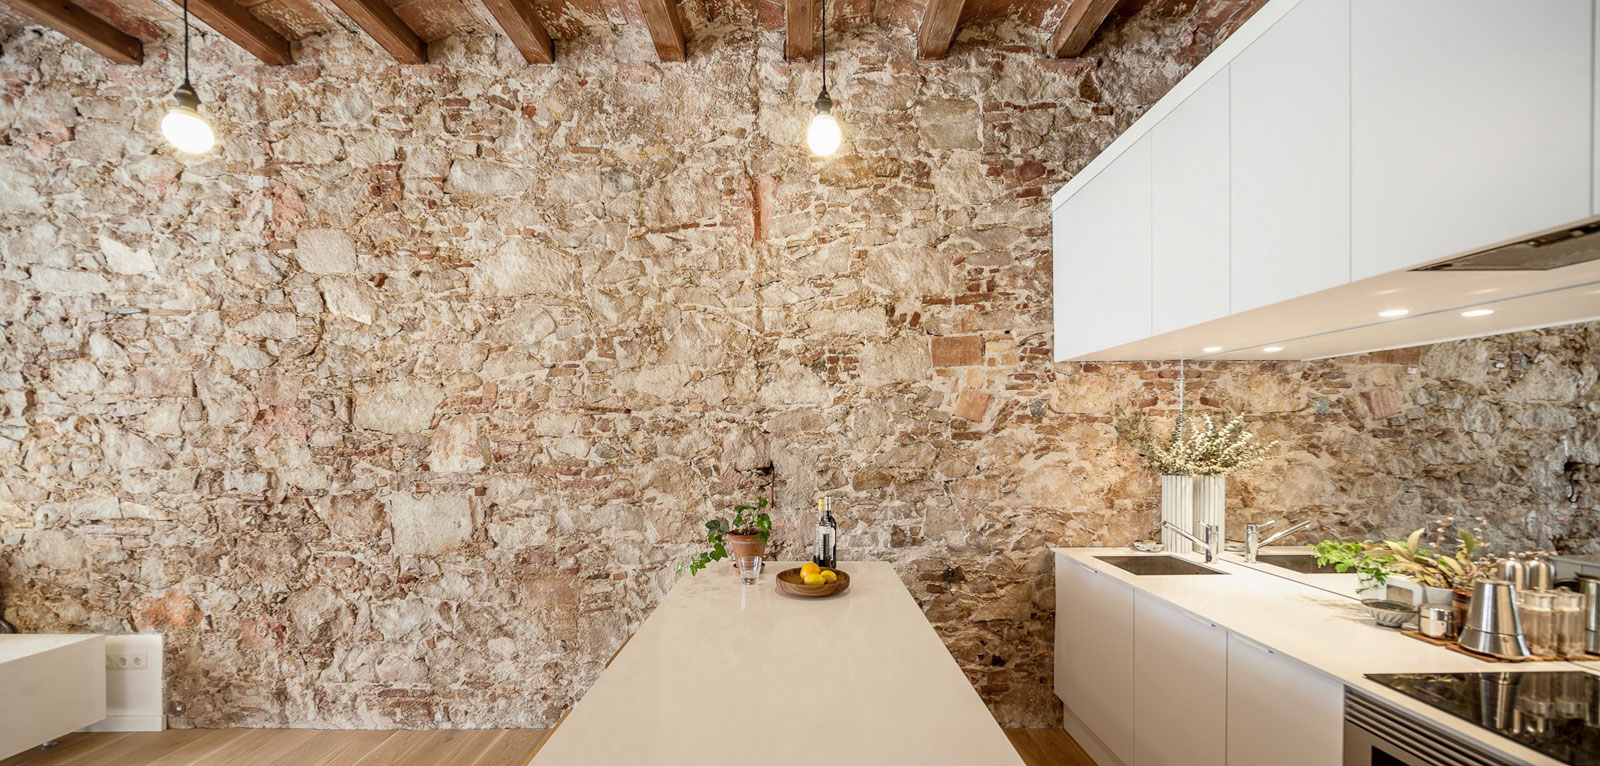 Renovation-Apartment-in-Les-Corts-kitchen-stone-wall